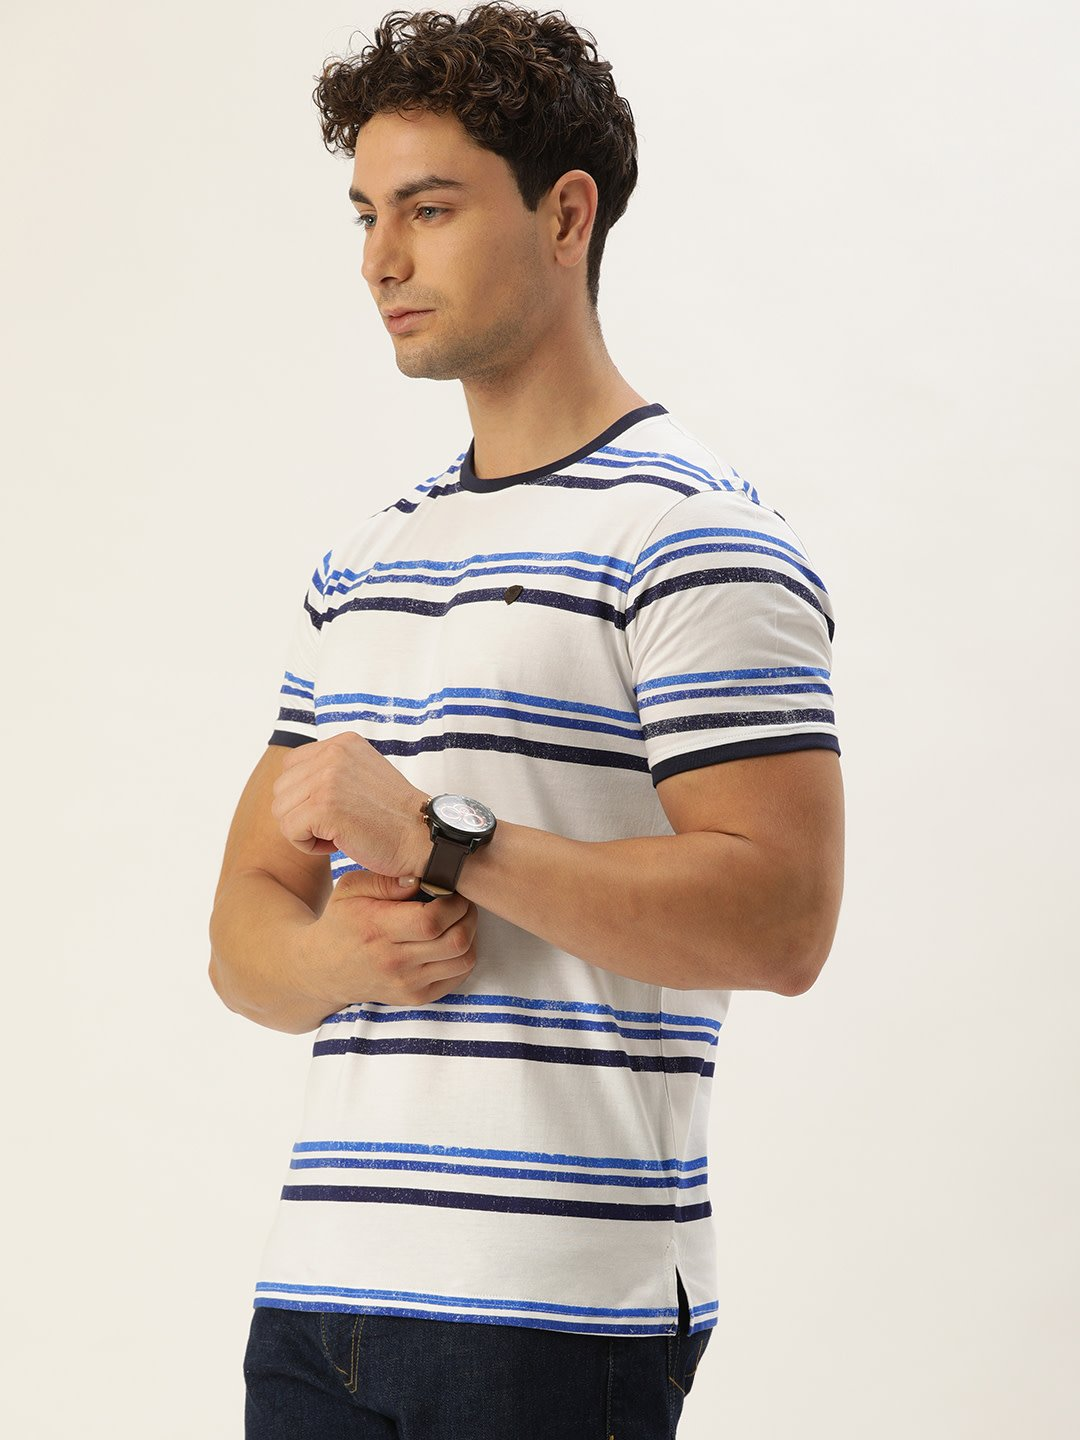 YWC Striped Round Neck T-Shirt